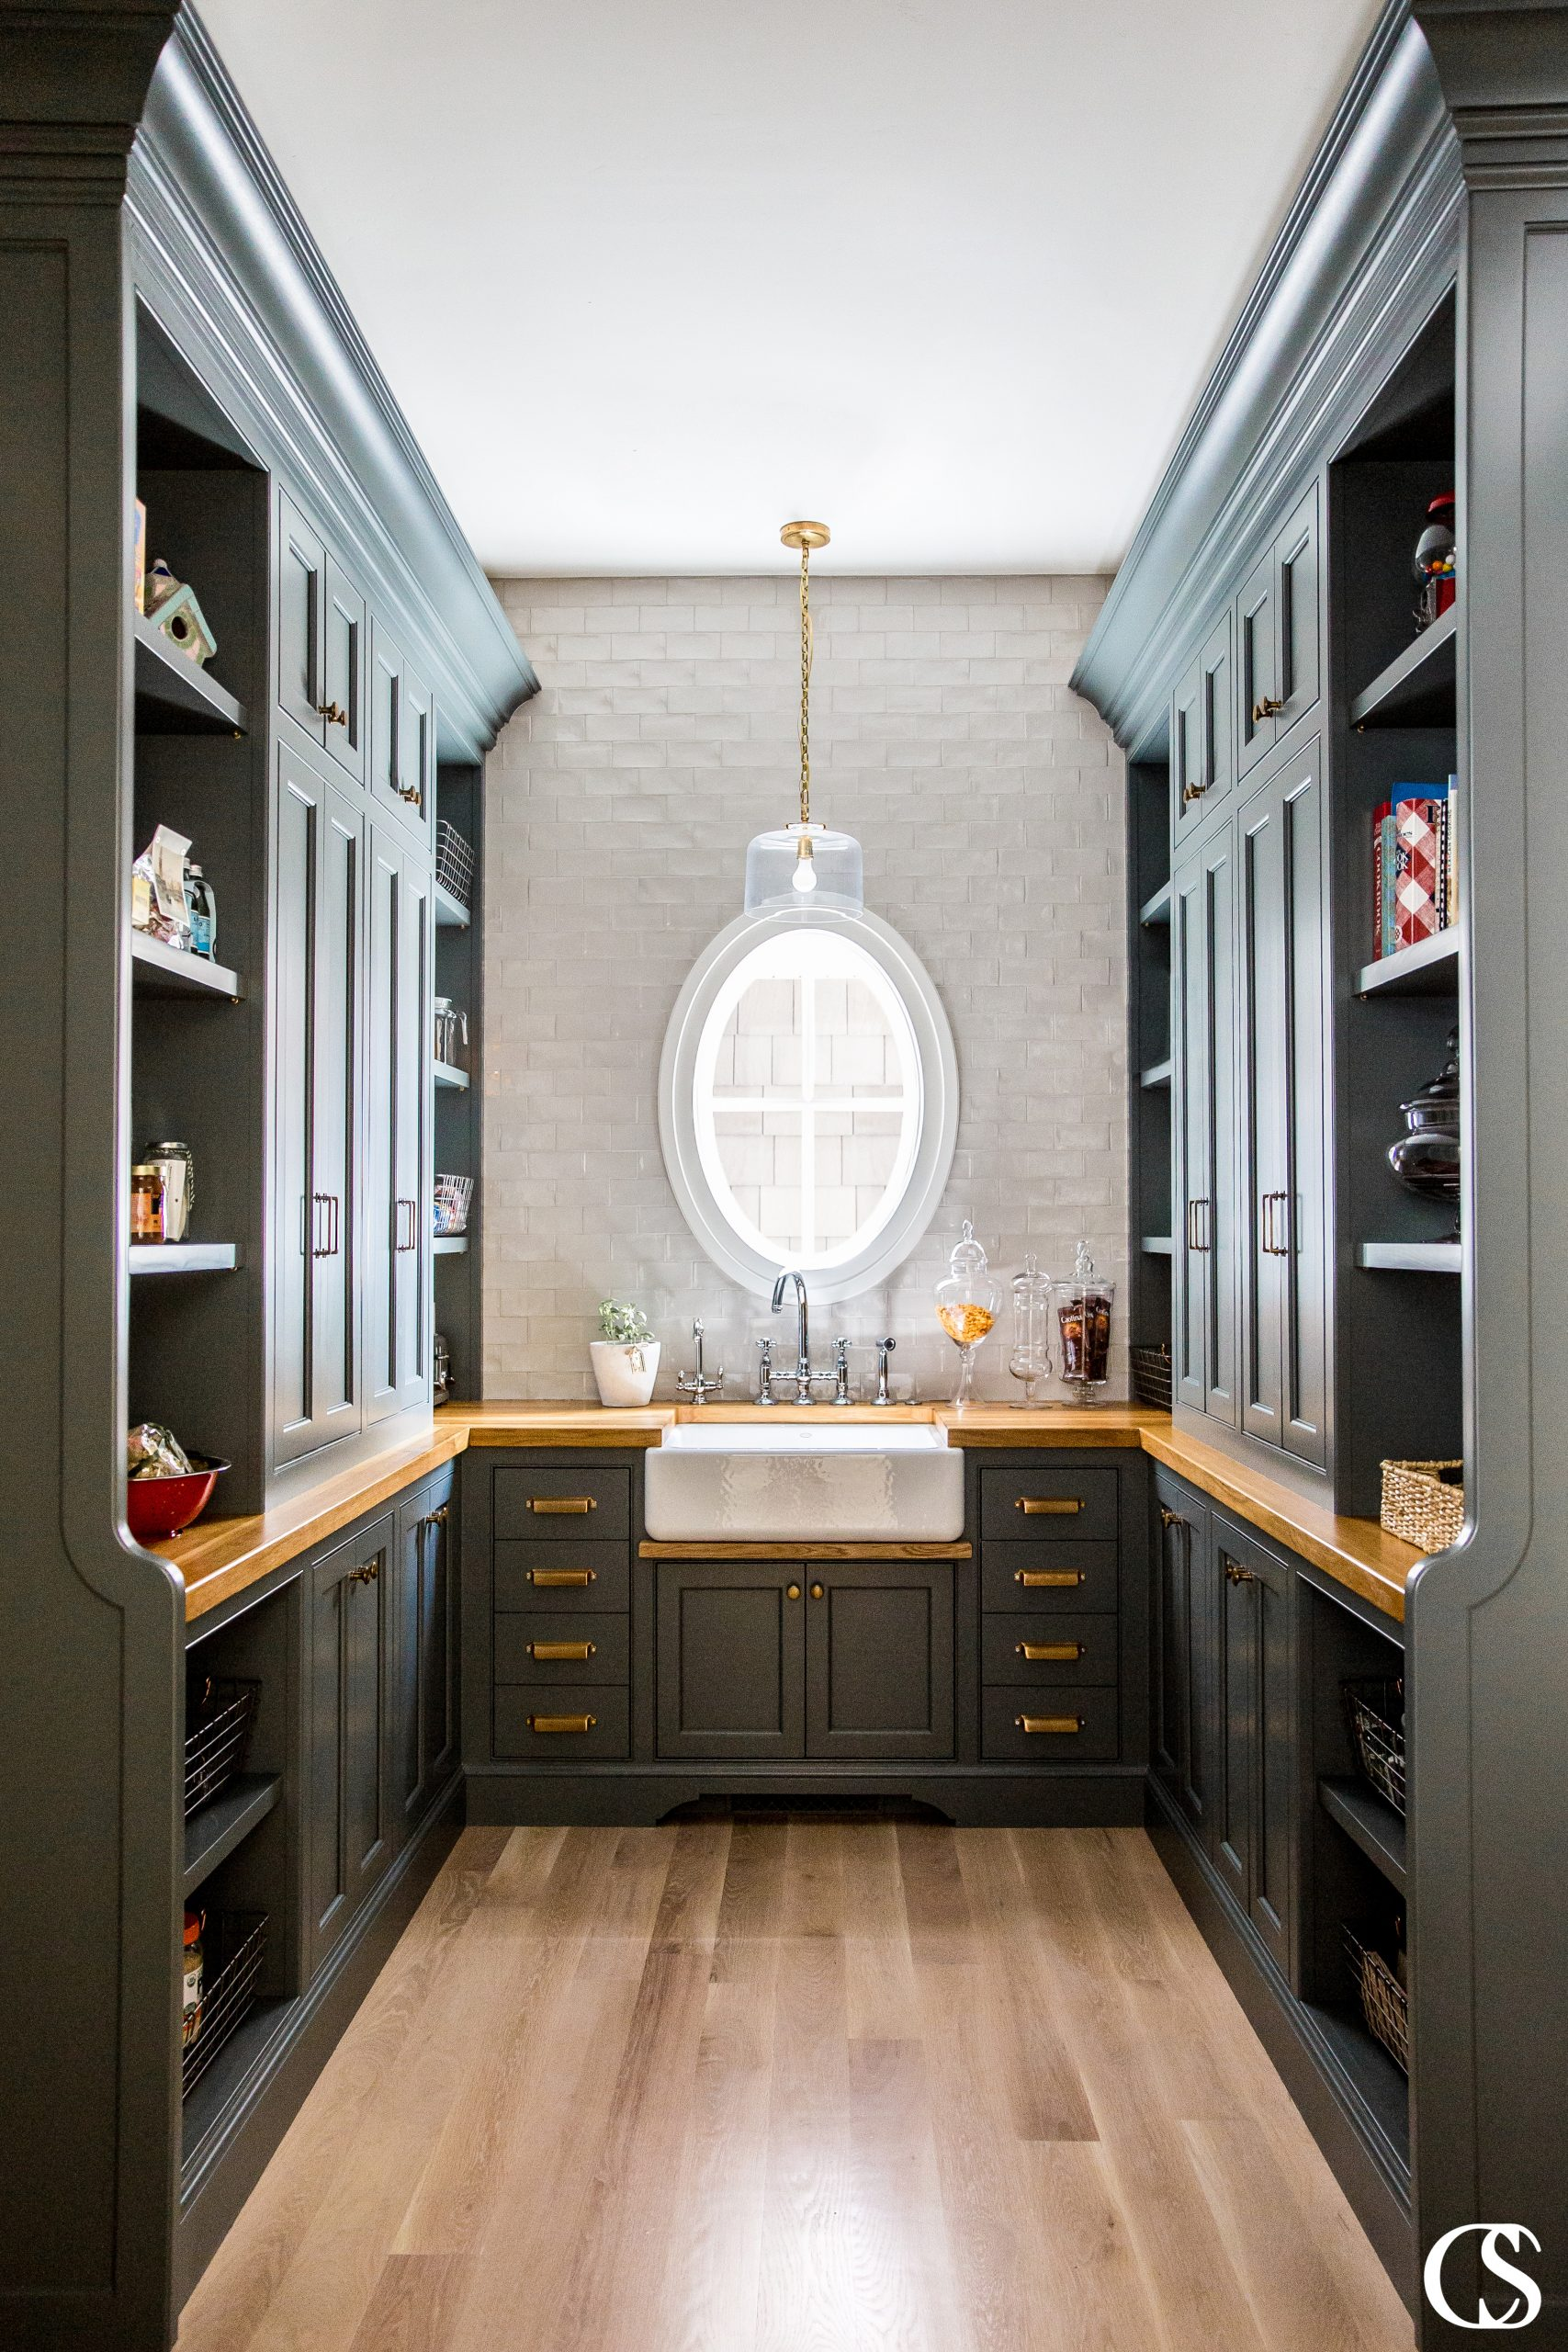 This pantry design included custom black cabinets, brass hardware, and oak countertops with plenty of space for style and storage.